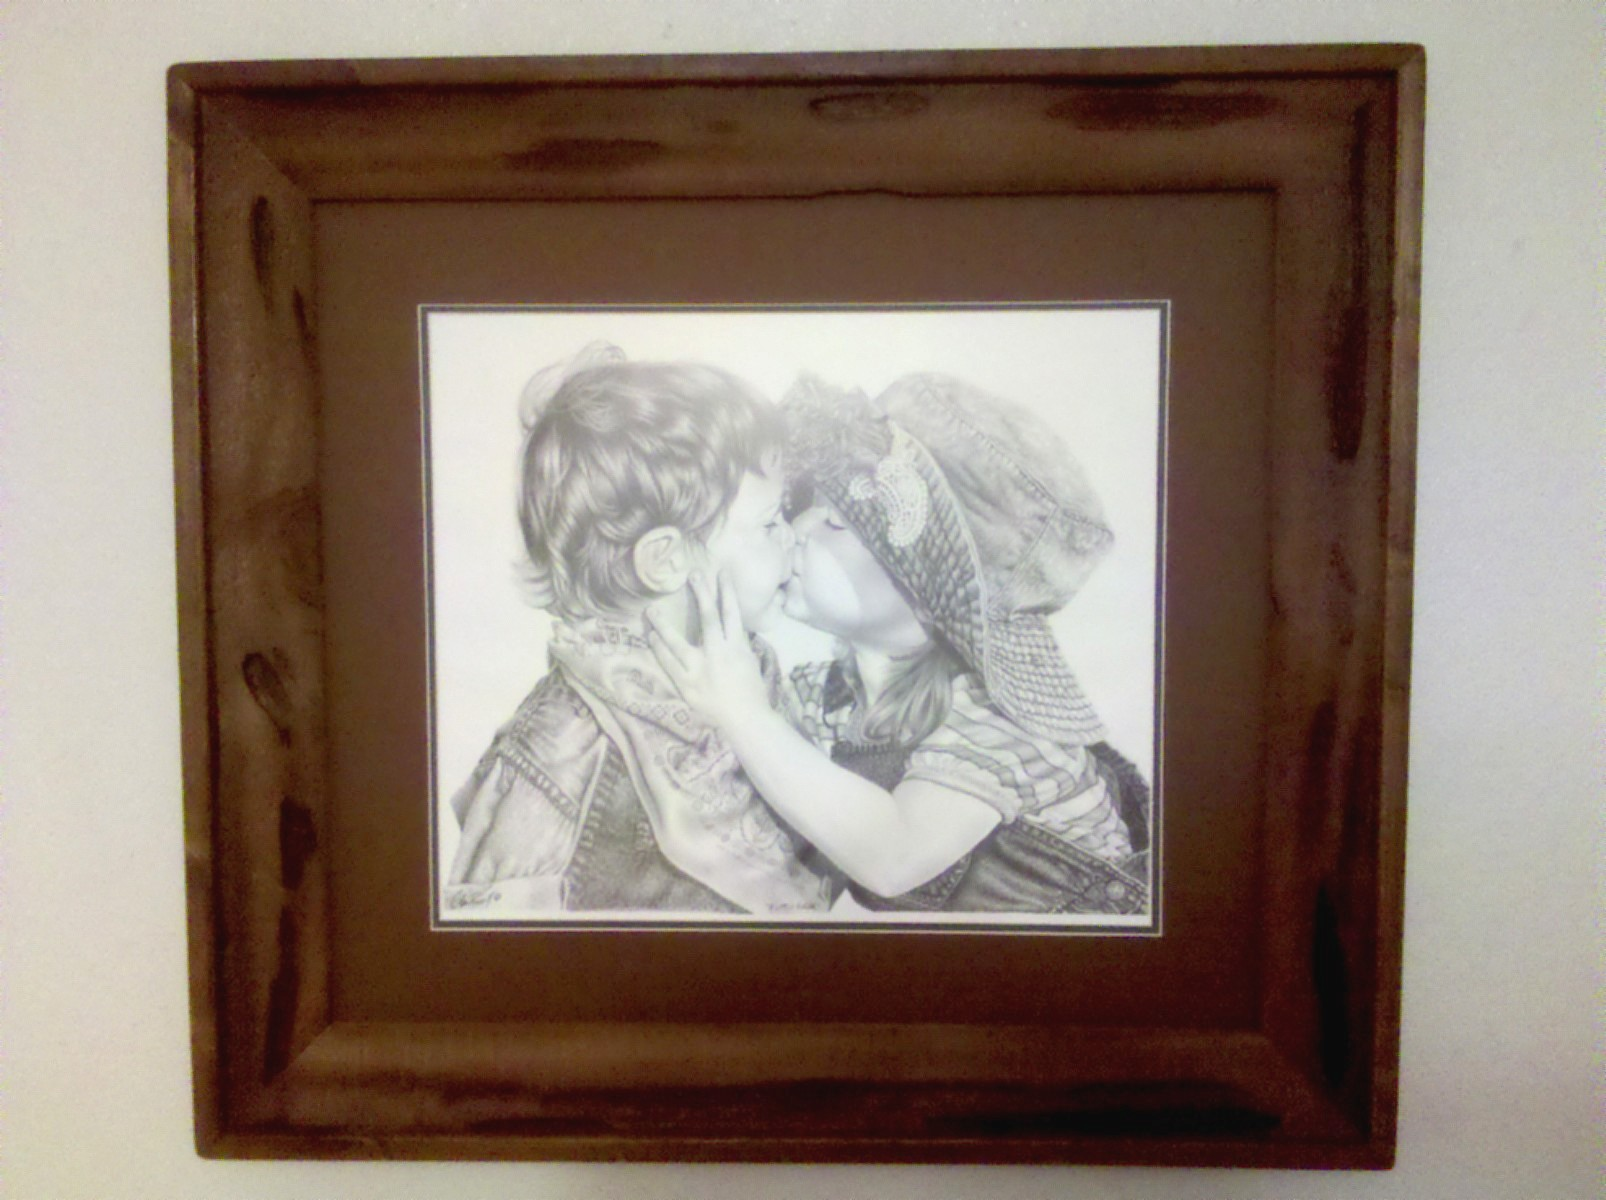 Rustic Cedar Framing Hand Crafted By Glen Powell